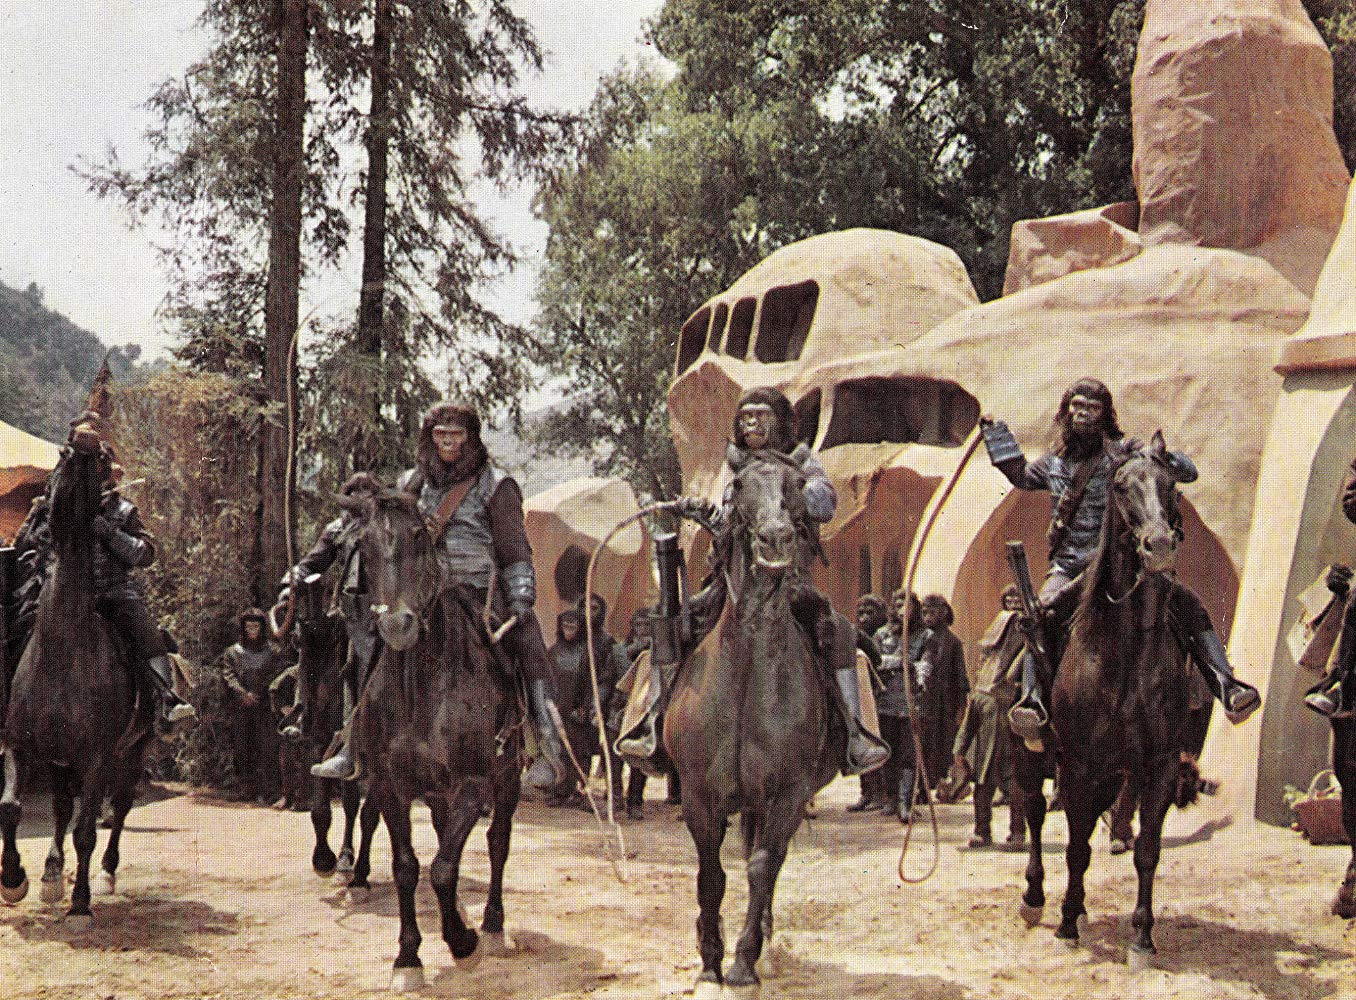 A world ruled by talking apes in Planet of the Apes (1968)